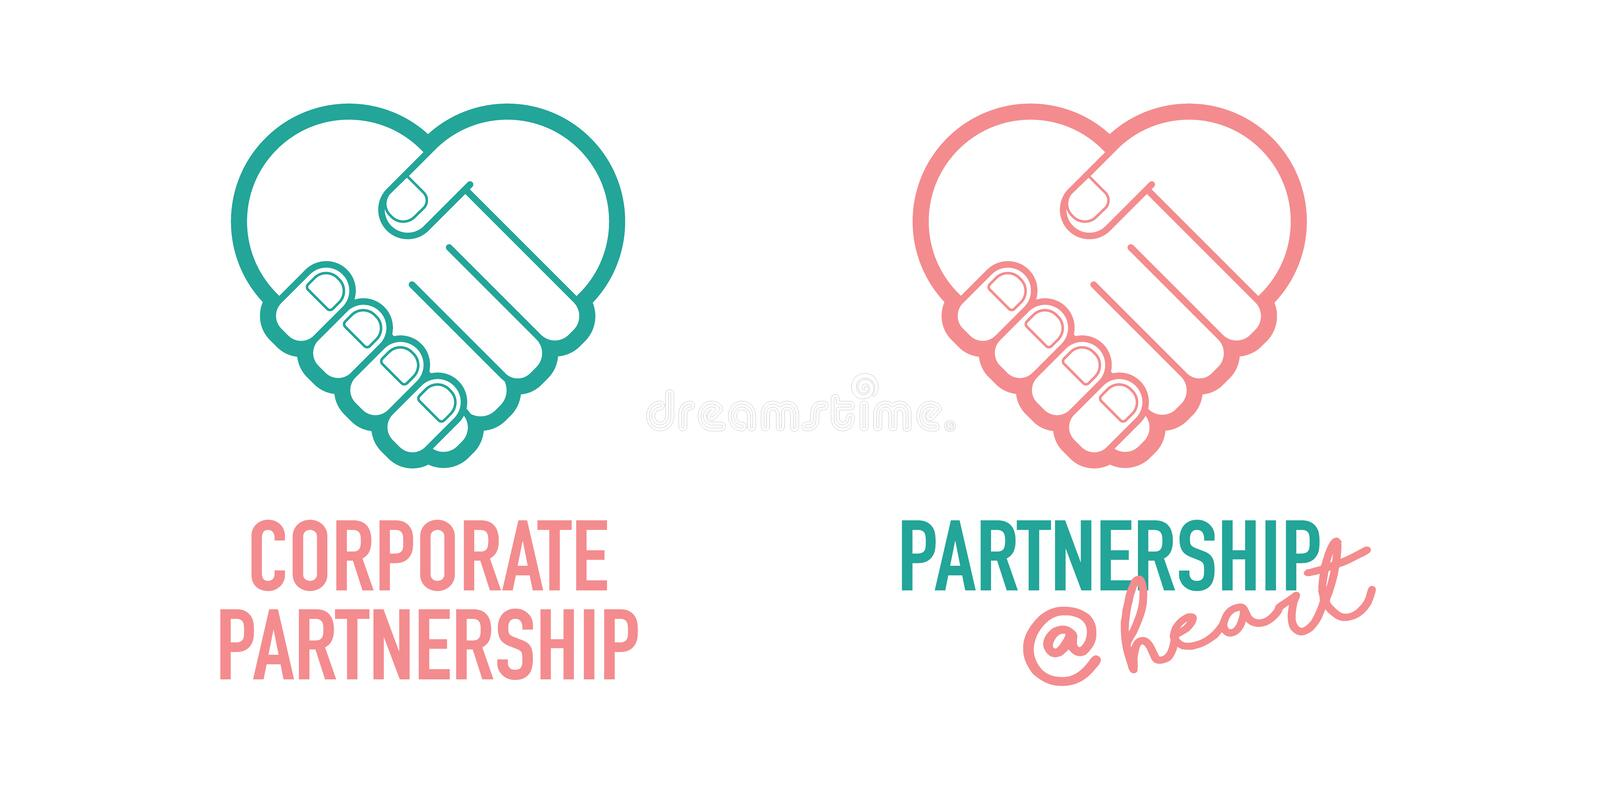 Corporate Partnership Business Successful Handshake Trading Deal Vector Icon vector illustration